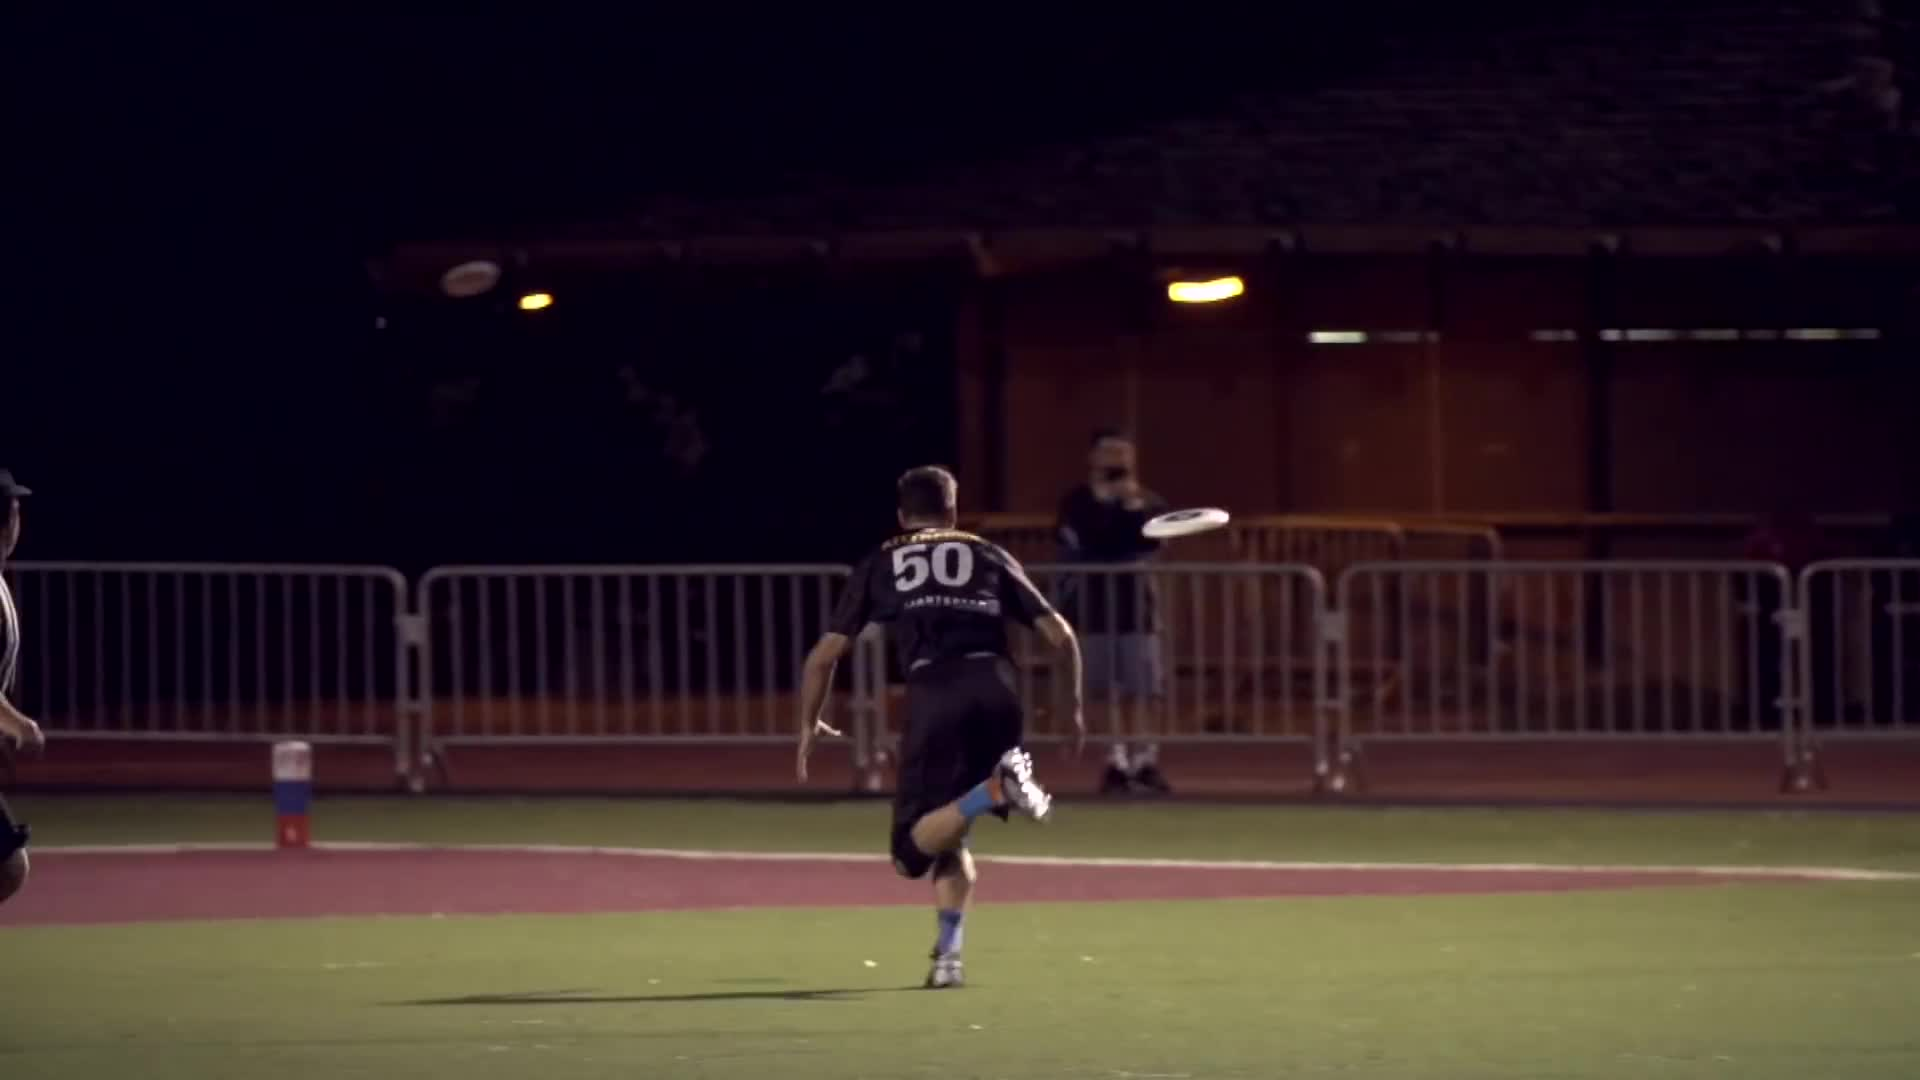 american ultimate disc league, audl, sports, theaudlchannel, ultimate, ultimate frisbee, Beau Kittredge Speed Layouts GIFs